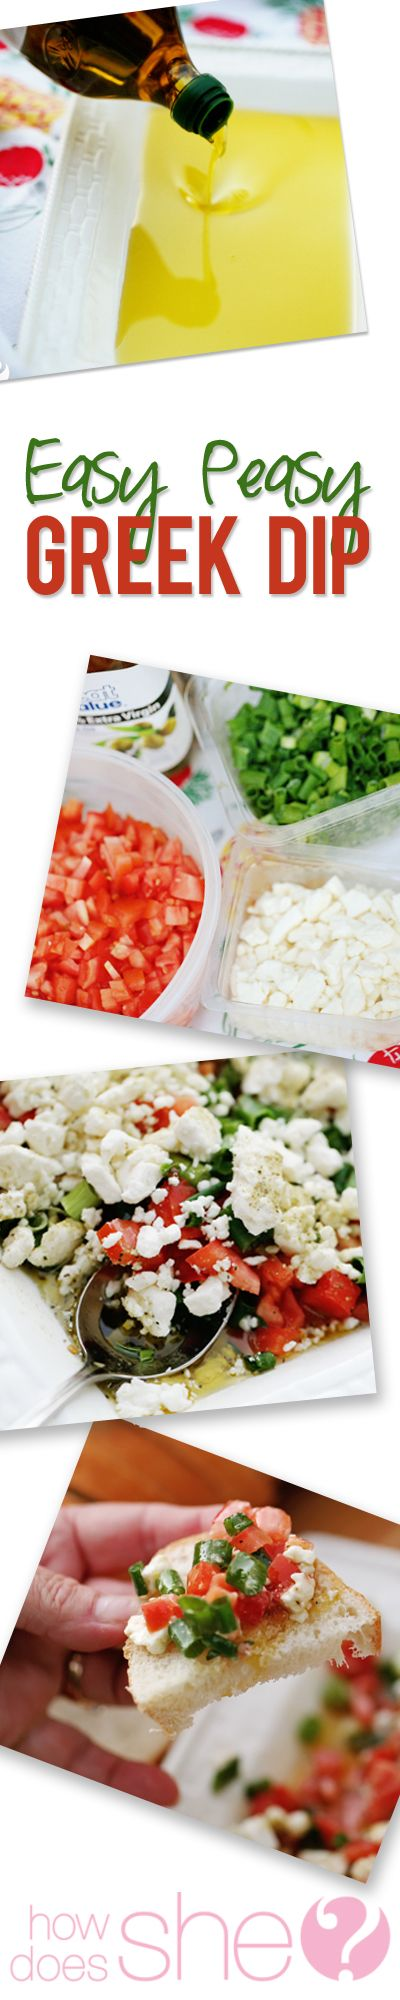 Shelley easy peasy greek dip pinterest